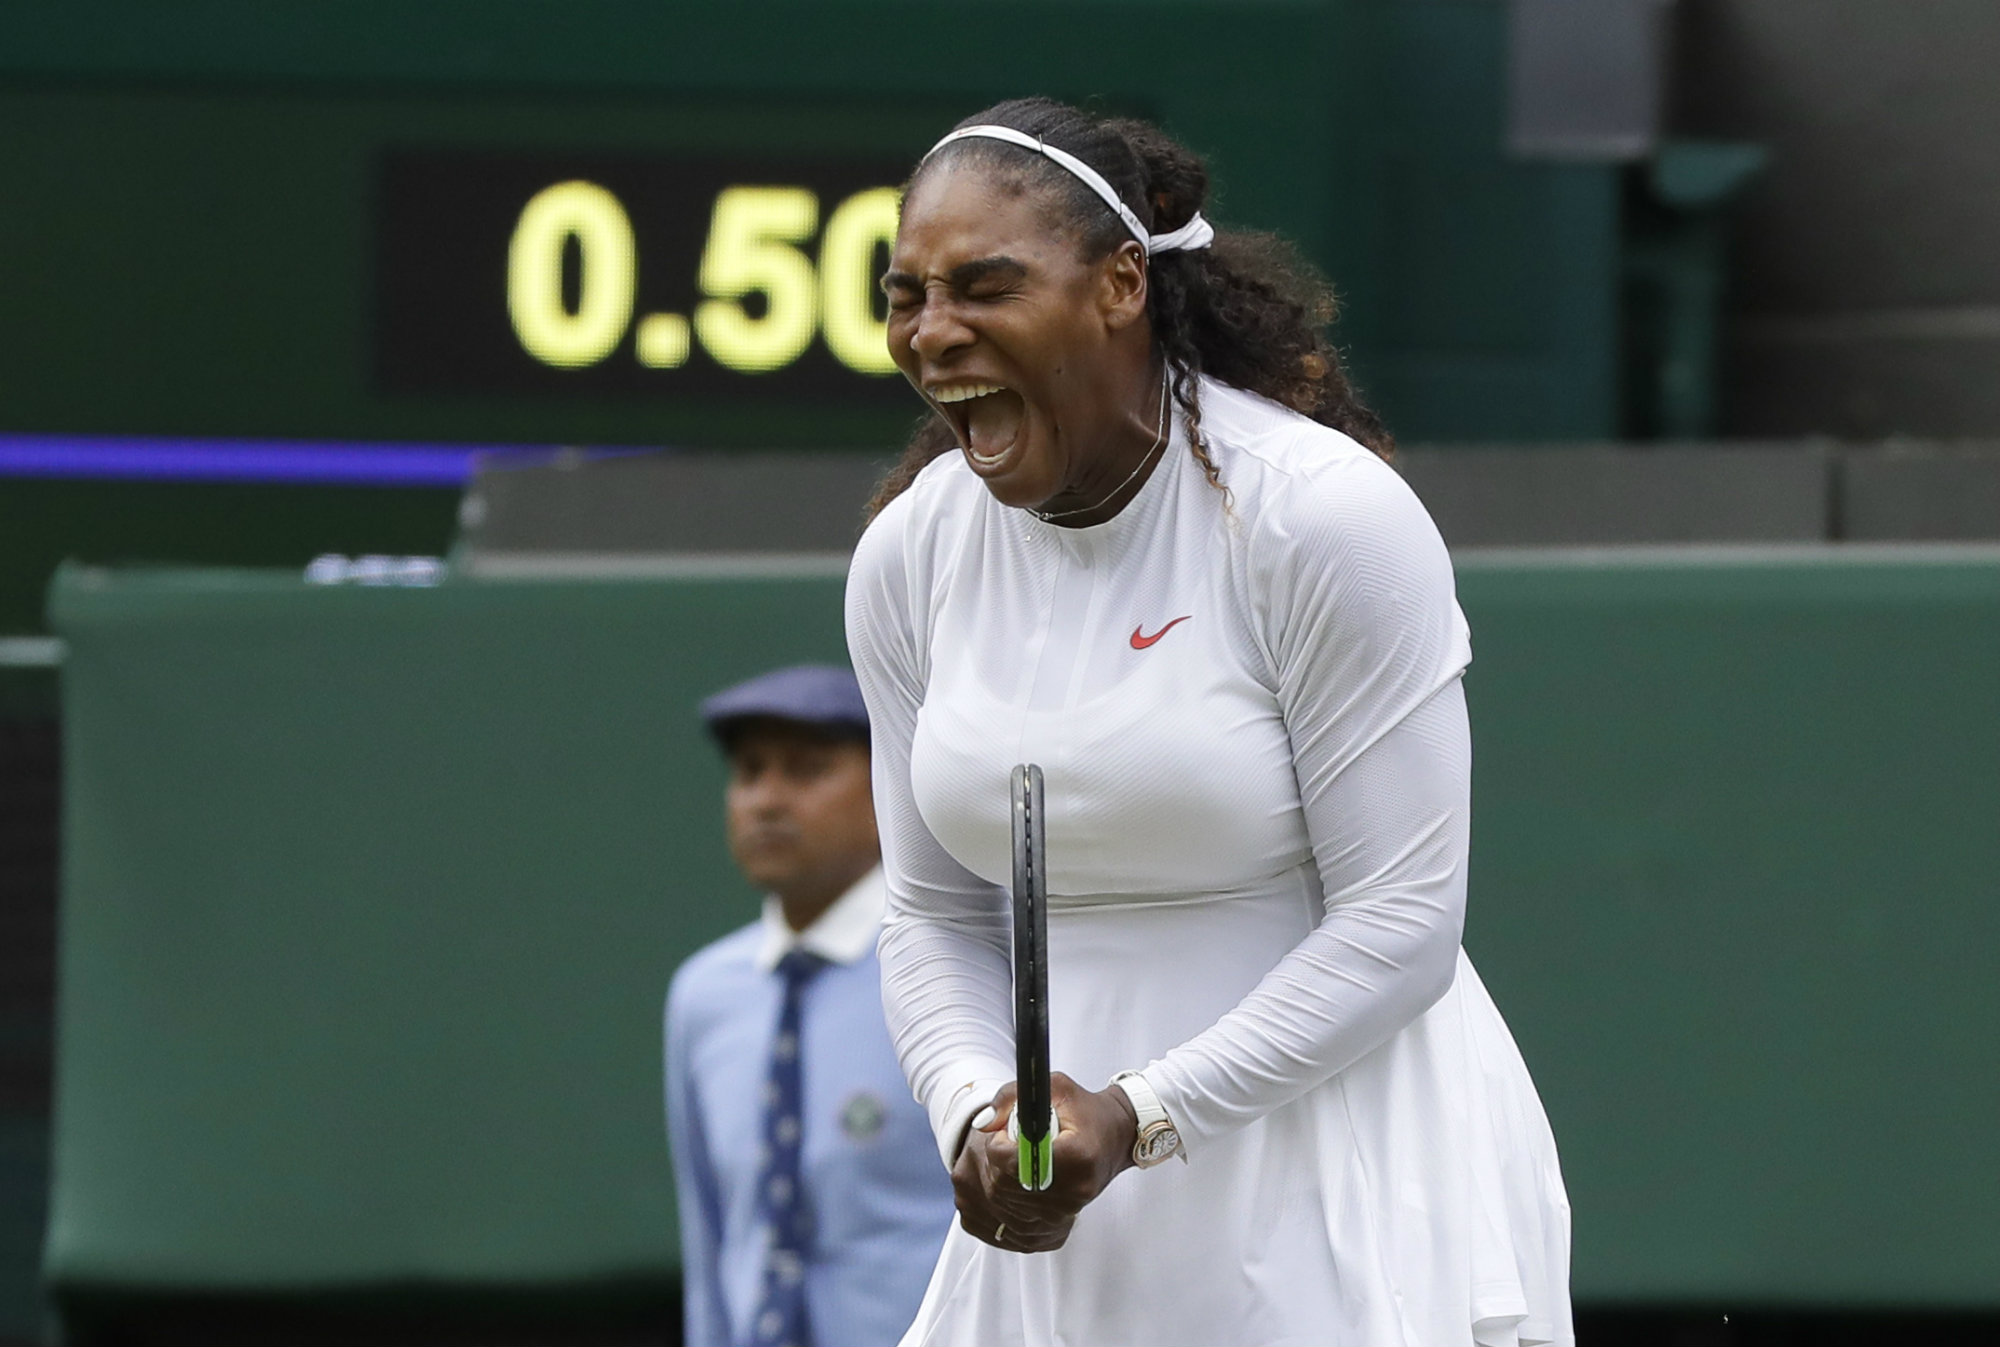 Williams-Kerber And Federer-Nadal Are The Two Most Probable Finals